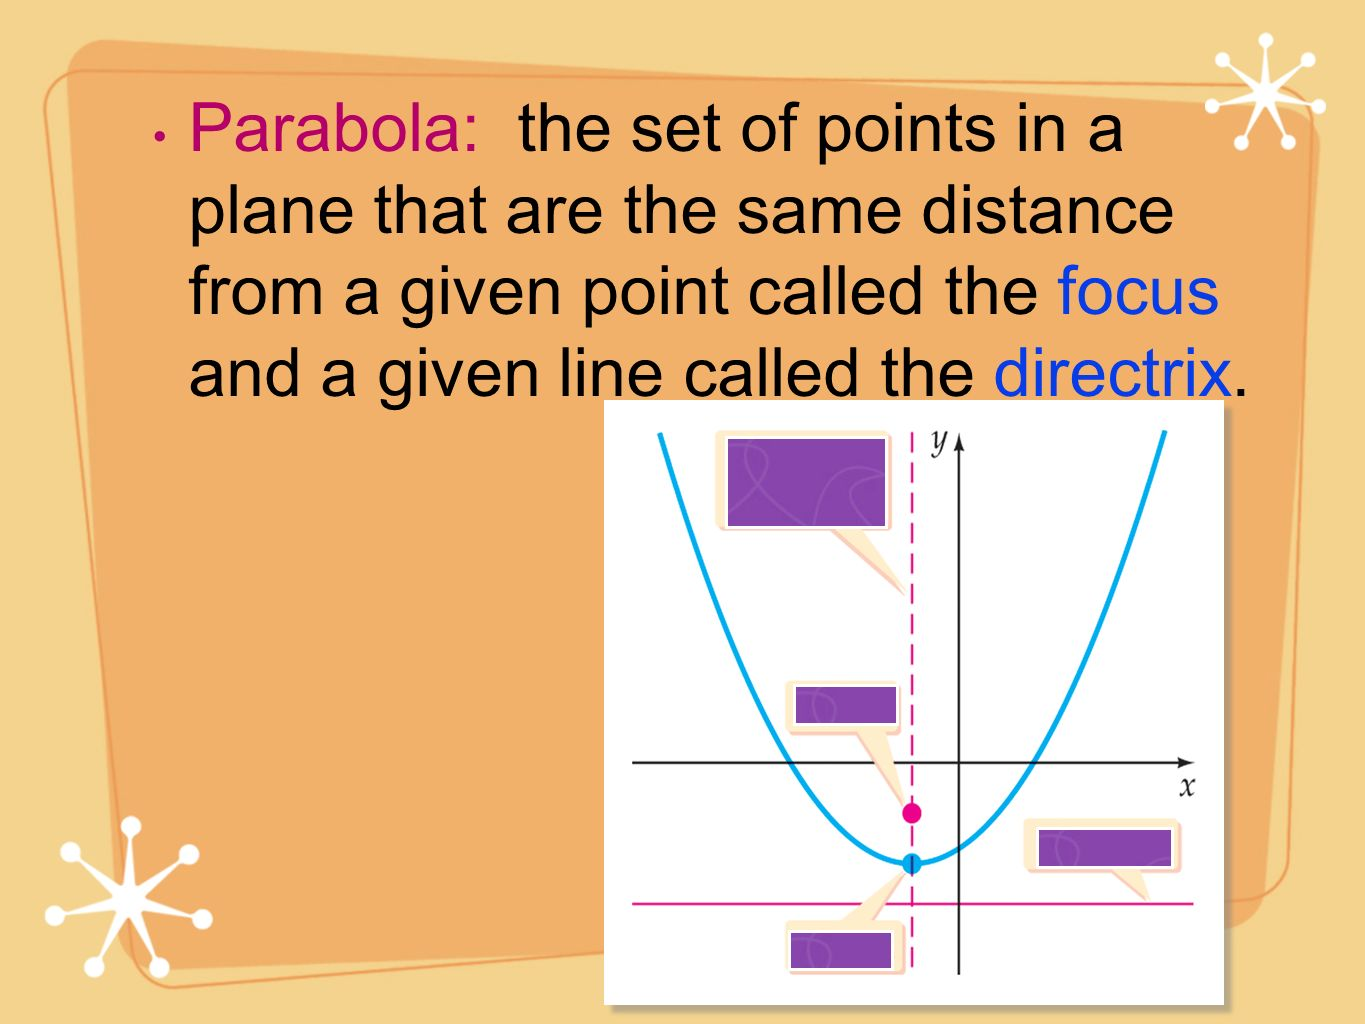 Parabola: the set of points in a plane that are the same distance from a given point called the focus and a given line called the directrix.